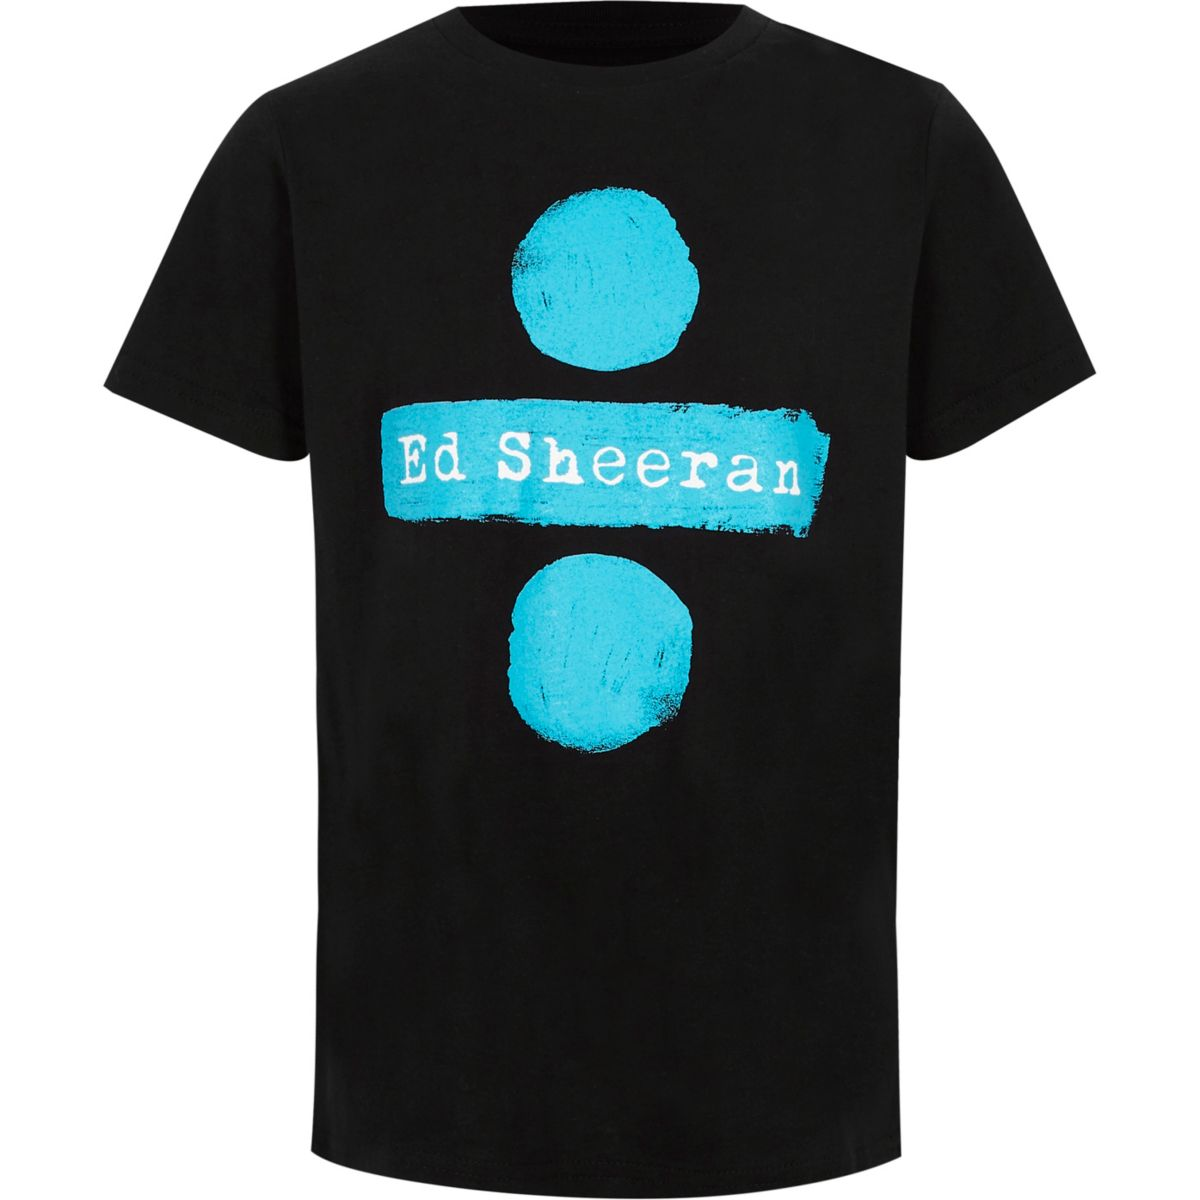 Boys black Ed Sheeran print T-shirt